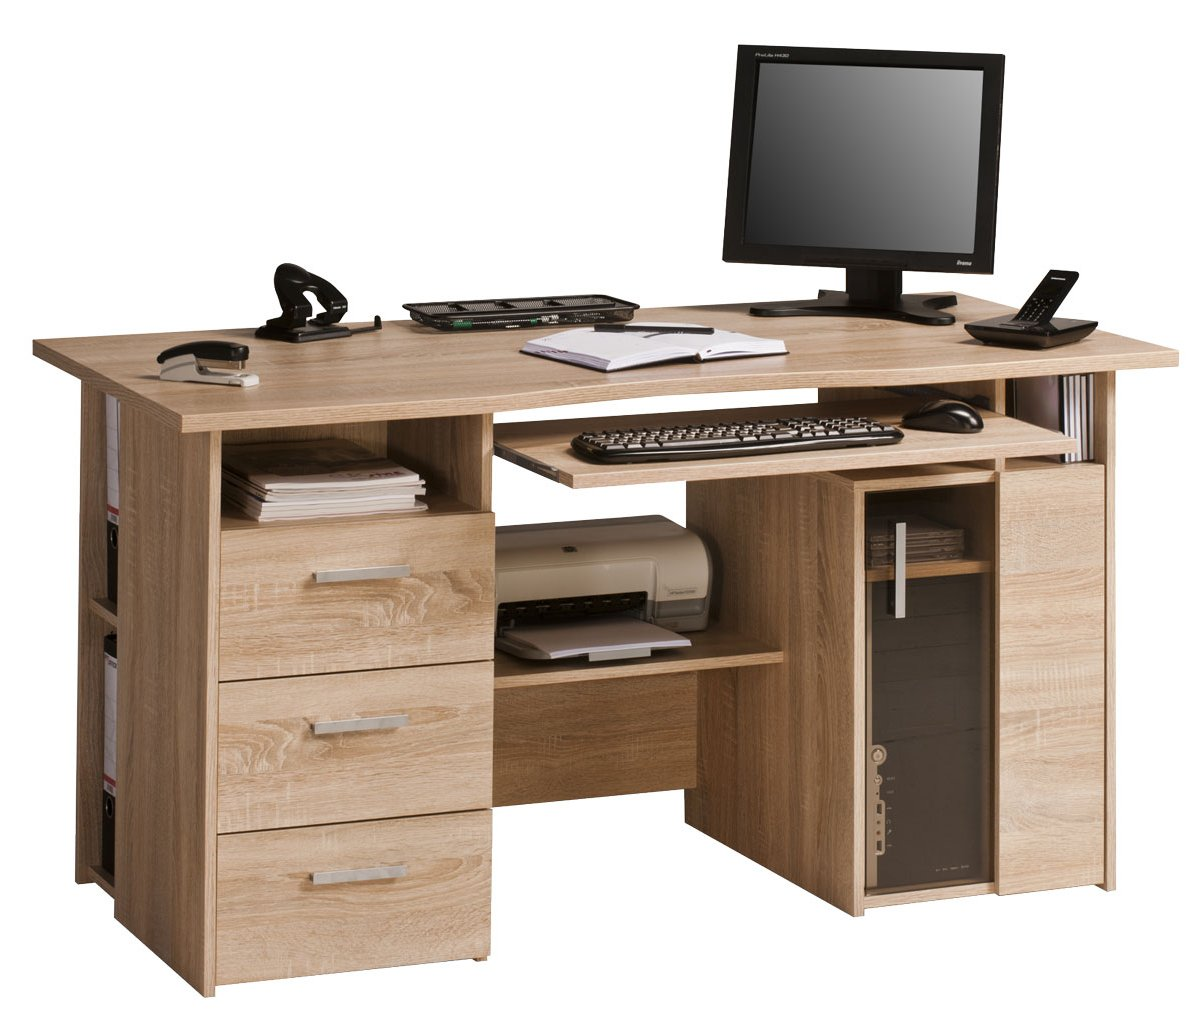 Maja Capital Oak Computer Desk Main Image